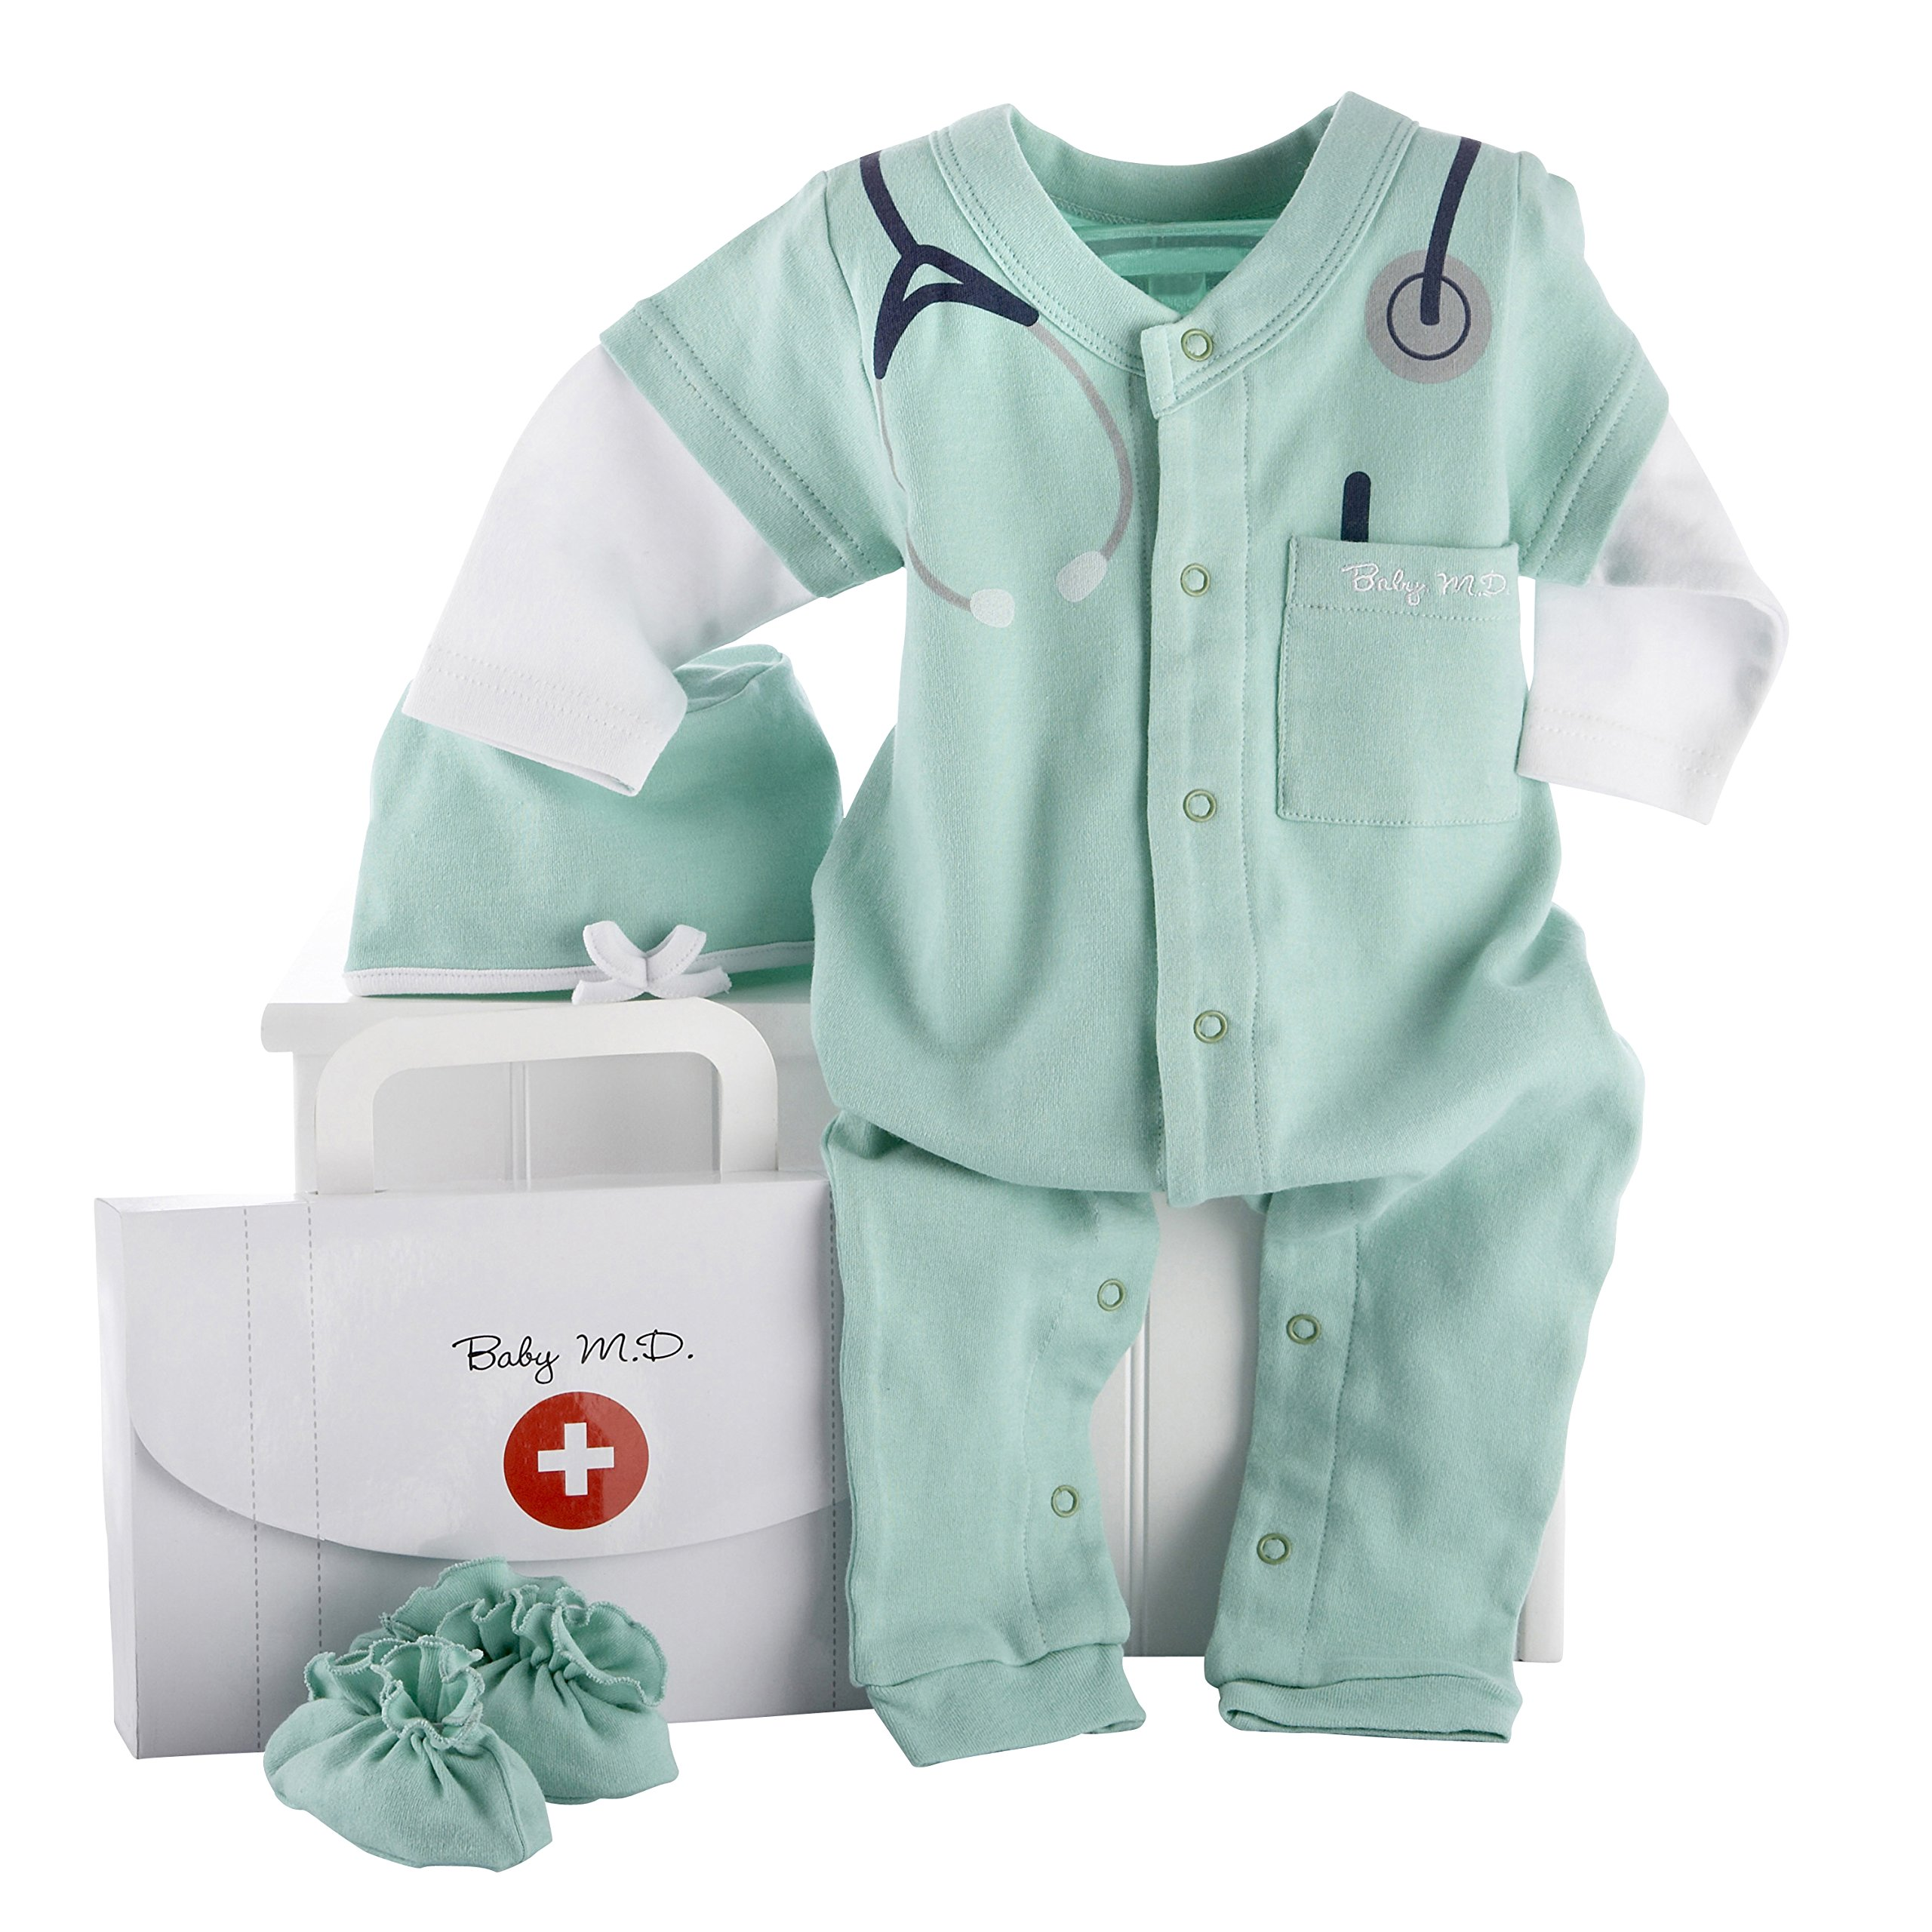 Baby Aspen, Baby M.D. Three-Piece Layette Set in''Doctor's Bag'' Gift Box, 0-6 Months by Baby Aspen